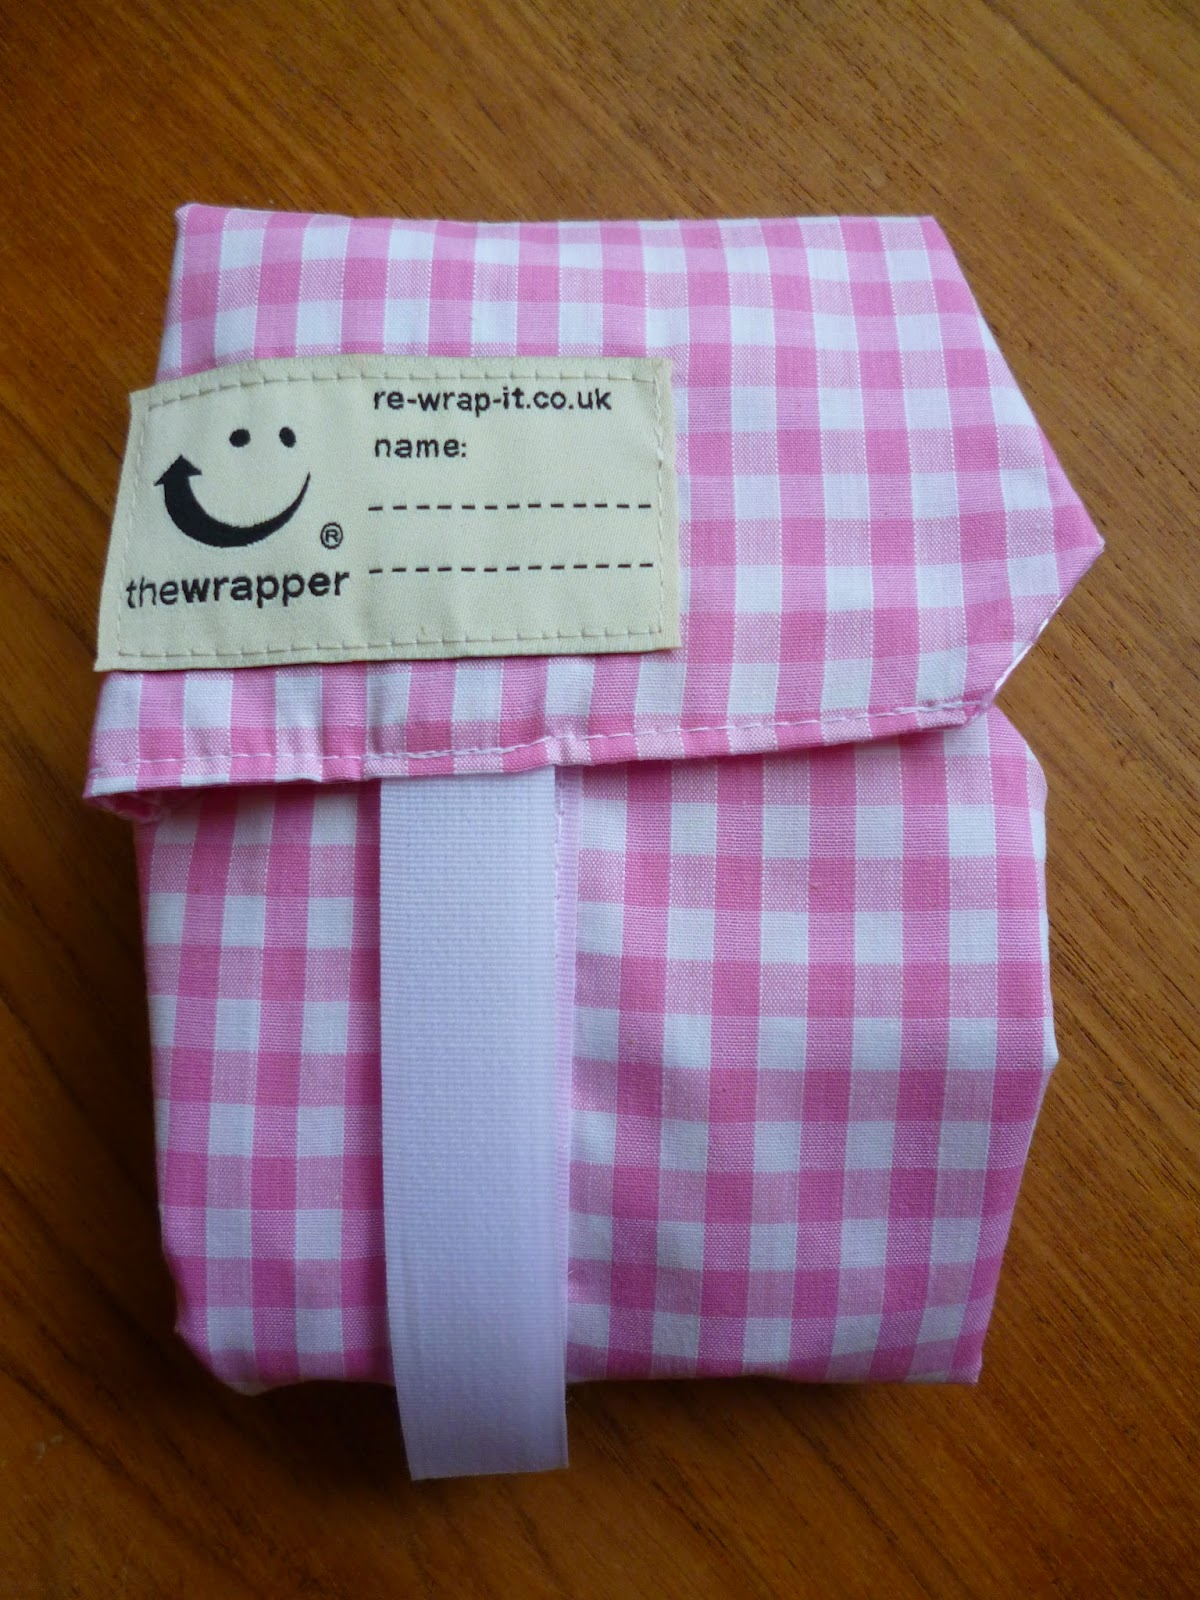 The Wrapper a reusable sandwich wrapper